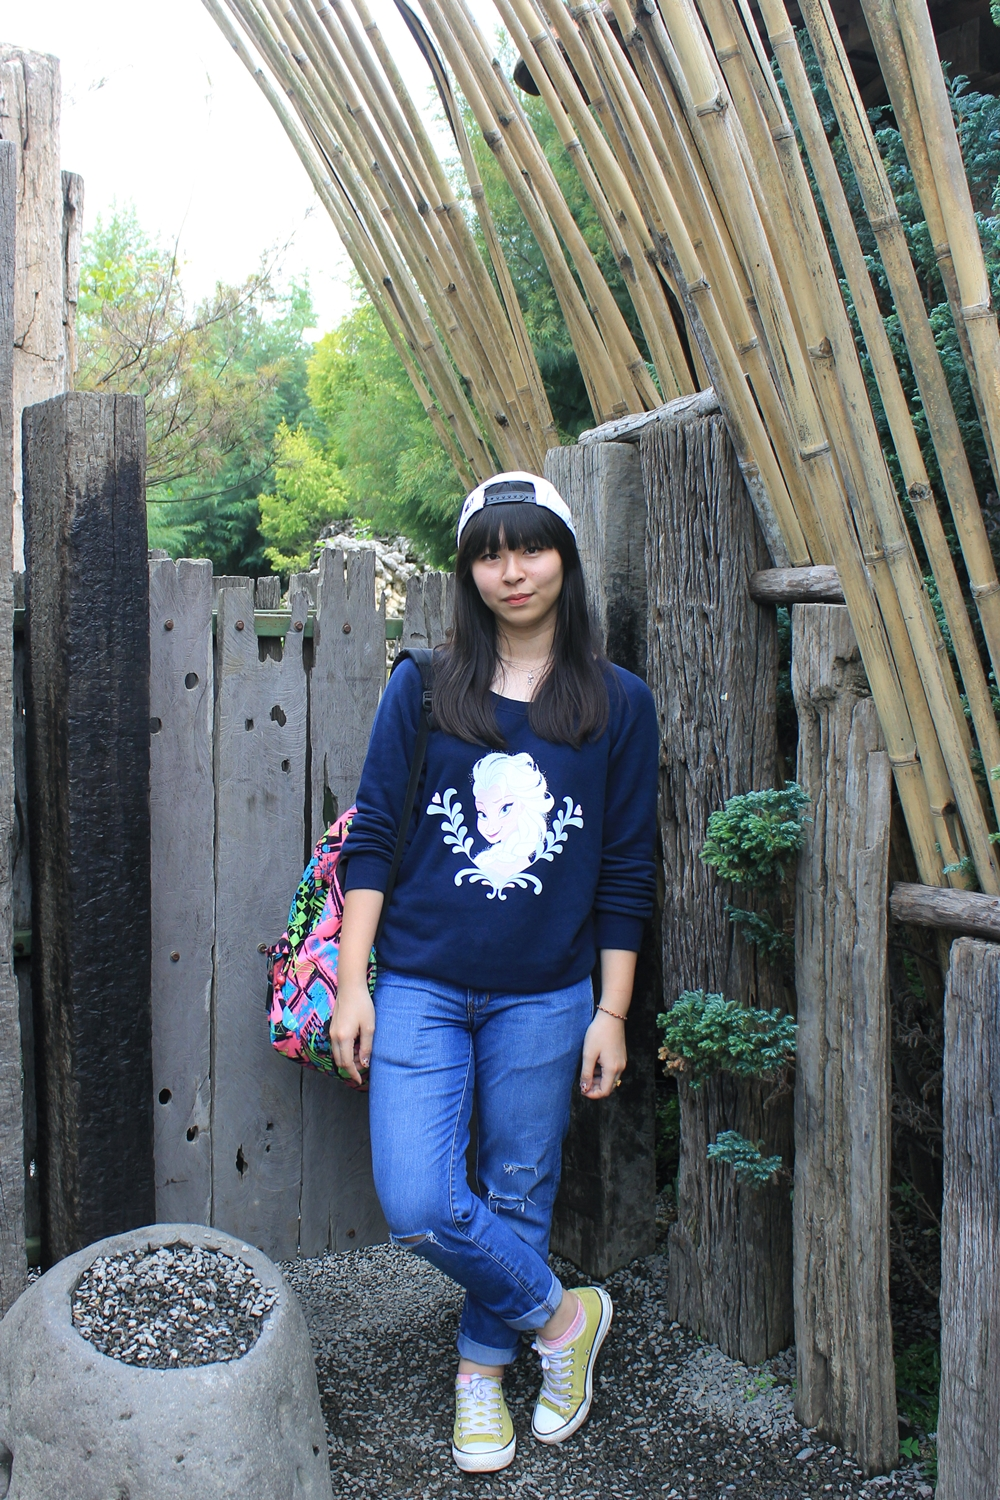 What I wore to Lembang ft. Elsa | japobsganbare.blogspot.com